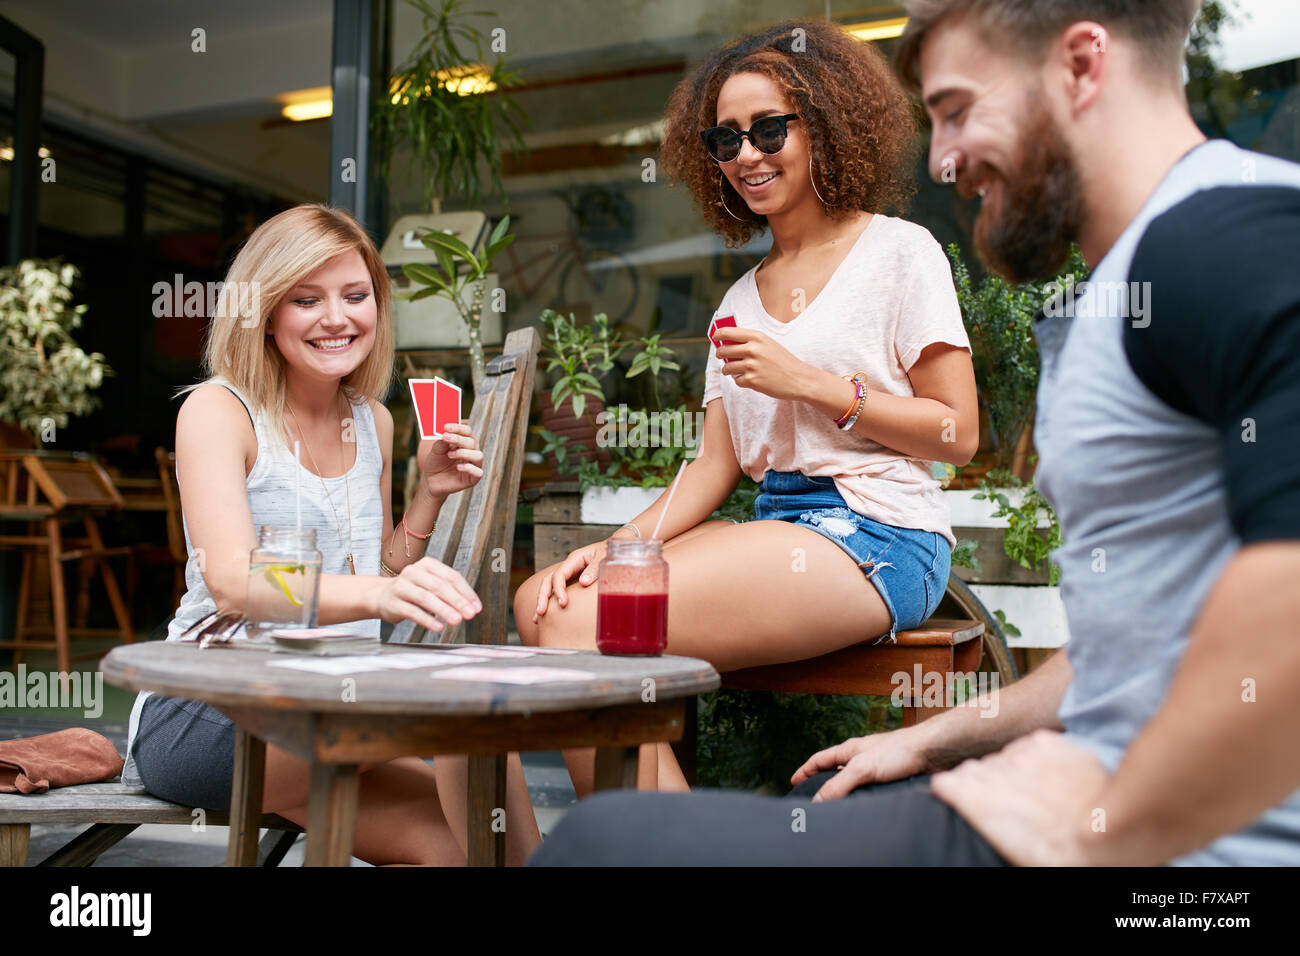 Group of friends playing a game of cards in a cafe. Woman picking up a playing card on table and smiling. - Stock Image